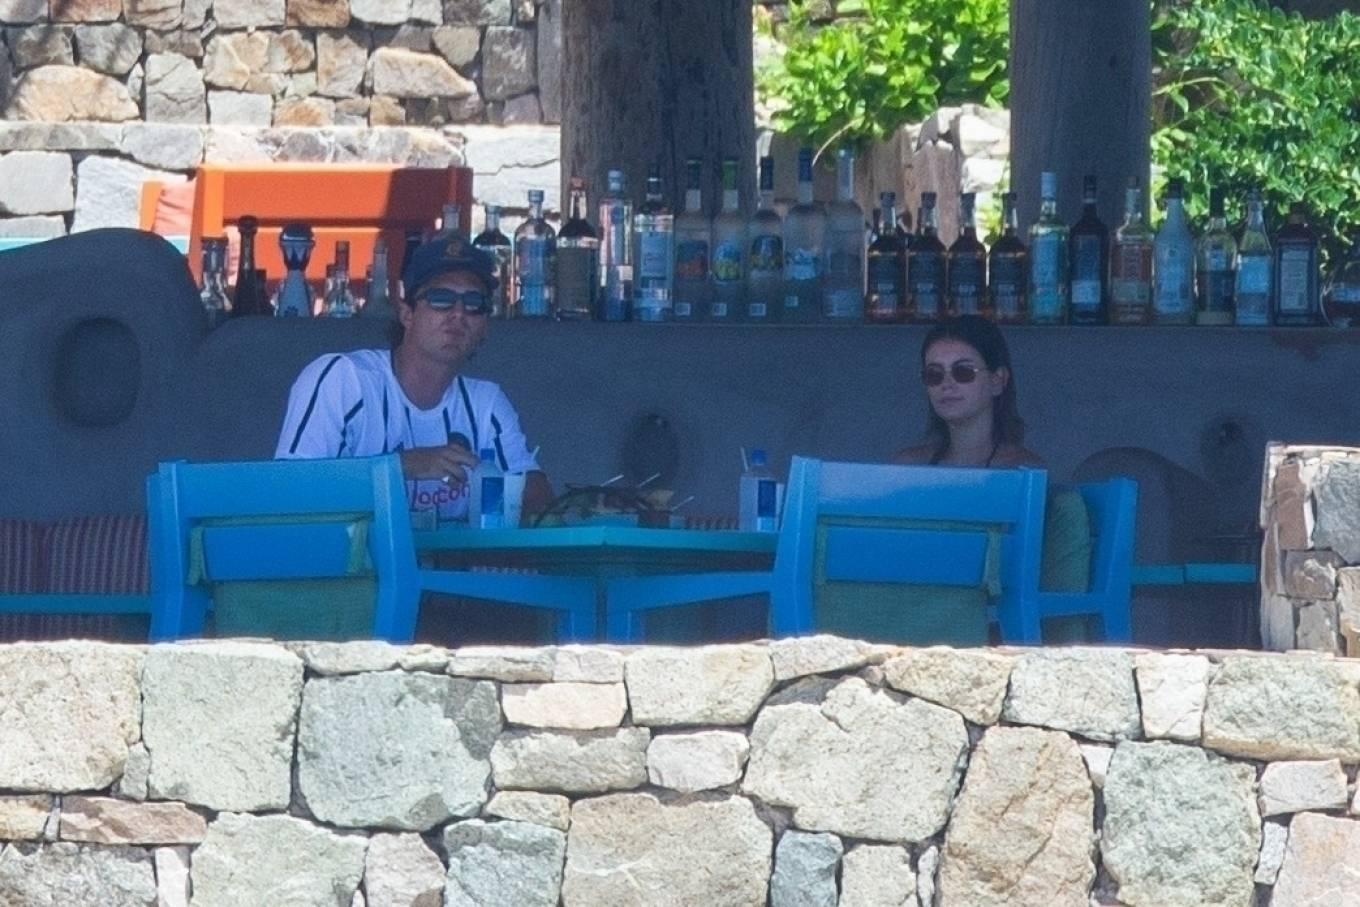 Kaia Gerber 2020 : Kaia Gerber and Jacob Elordi – Pictured while on vacation in Cabo San Lucas-06